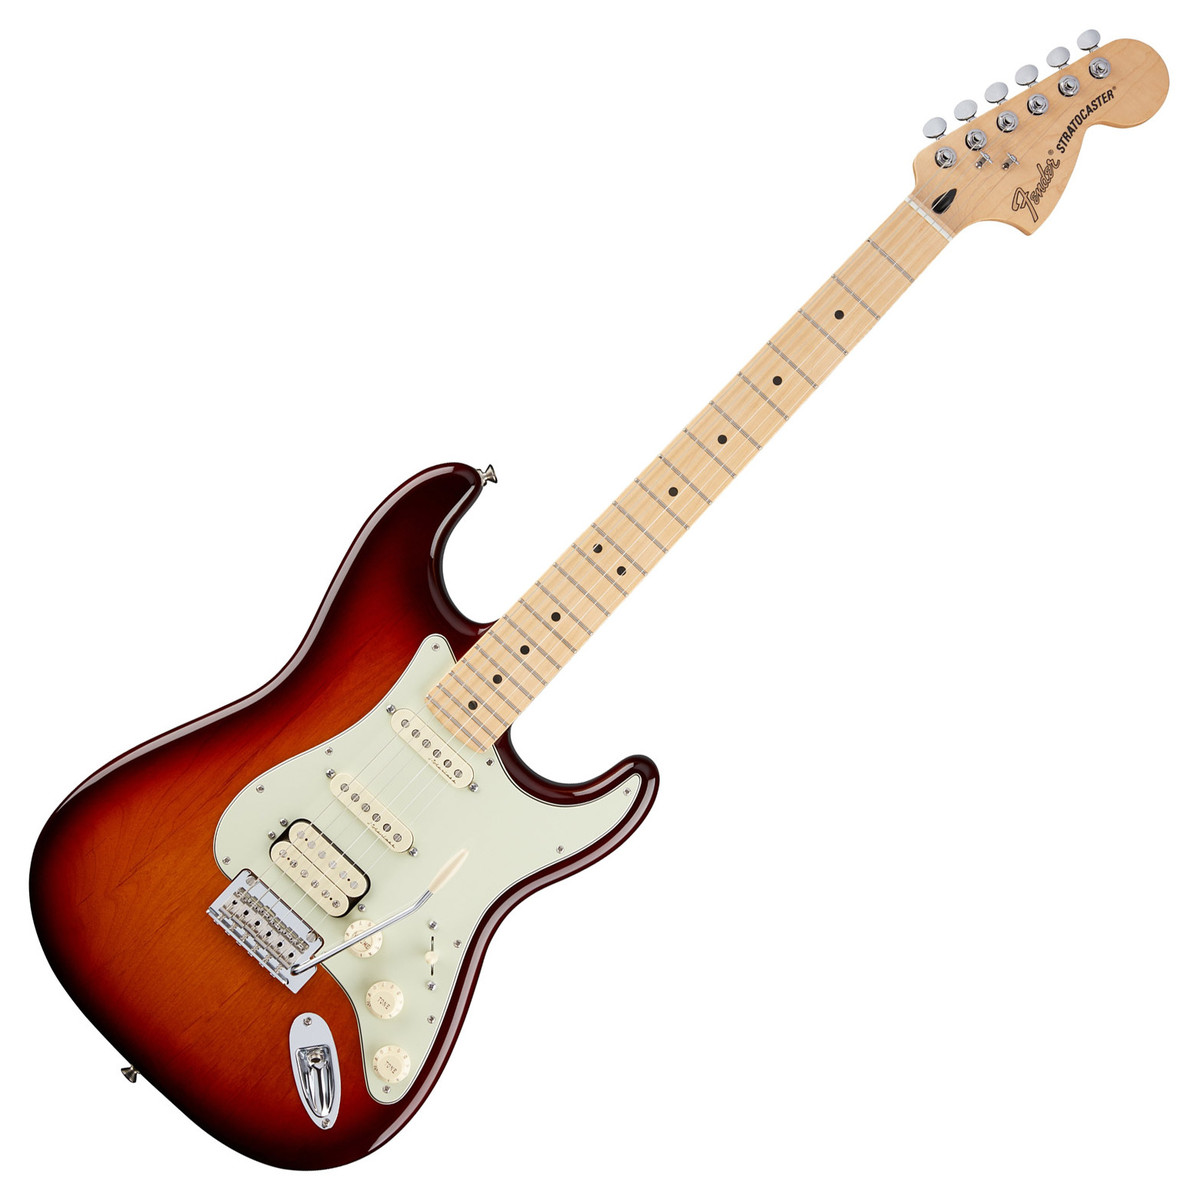 fender deluxe stratocaster hss electric guitar tobacco sunburst at. Black Bedroom Furniture Sets. Home Design Ideas